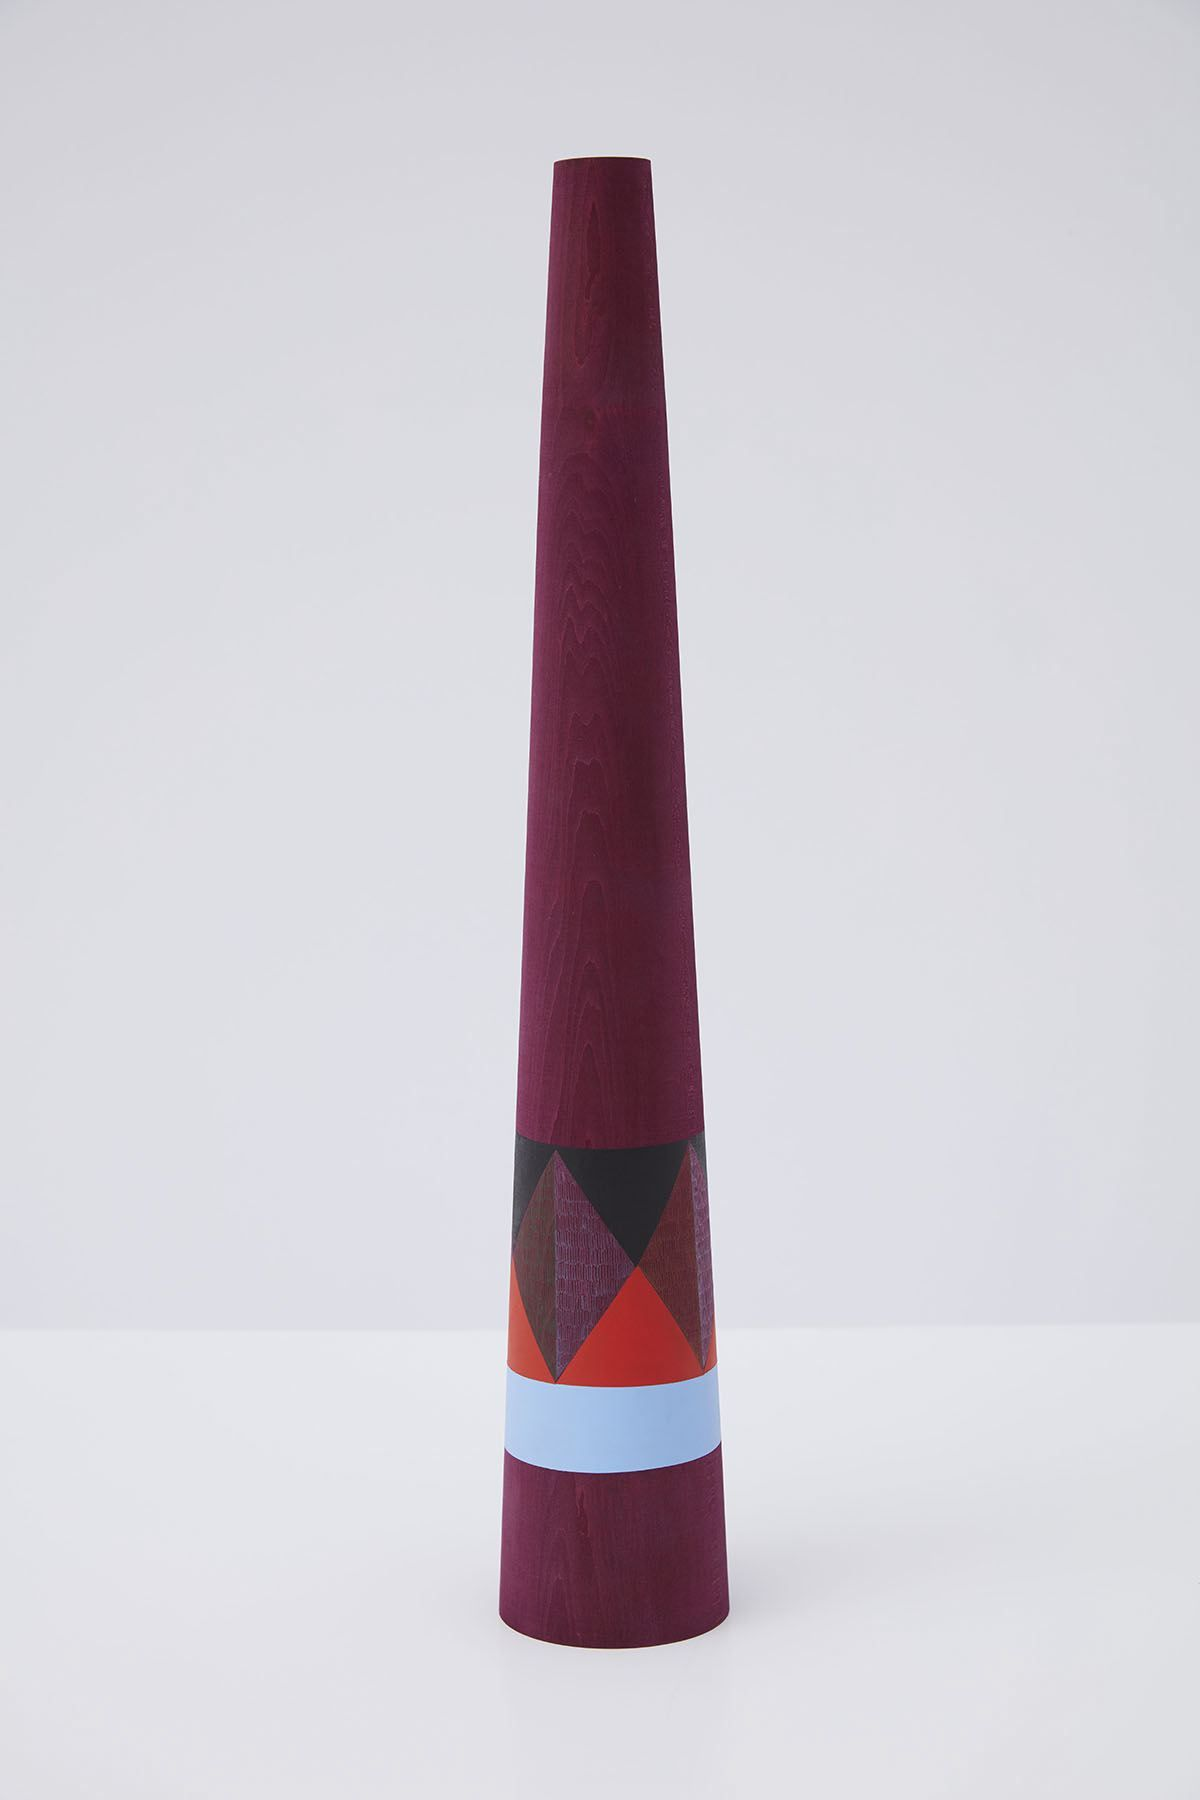 wooden sculpture with geometric shapes painted on it by claudia wieser